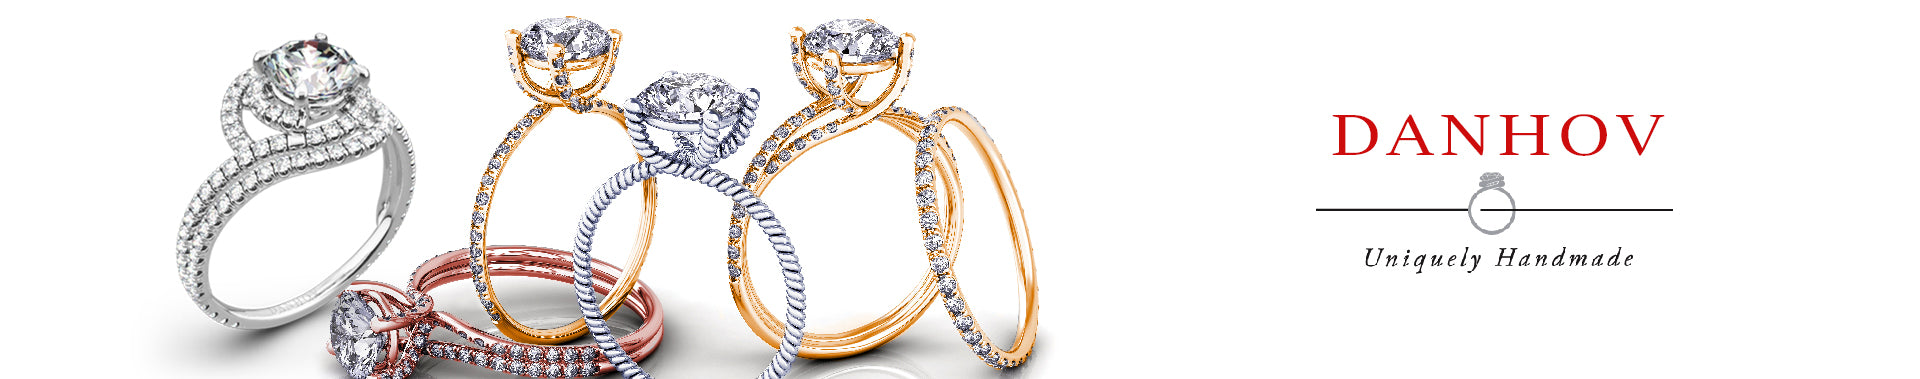 Danhov Engagement Ring Collection